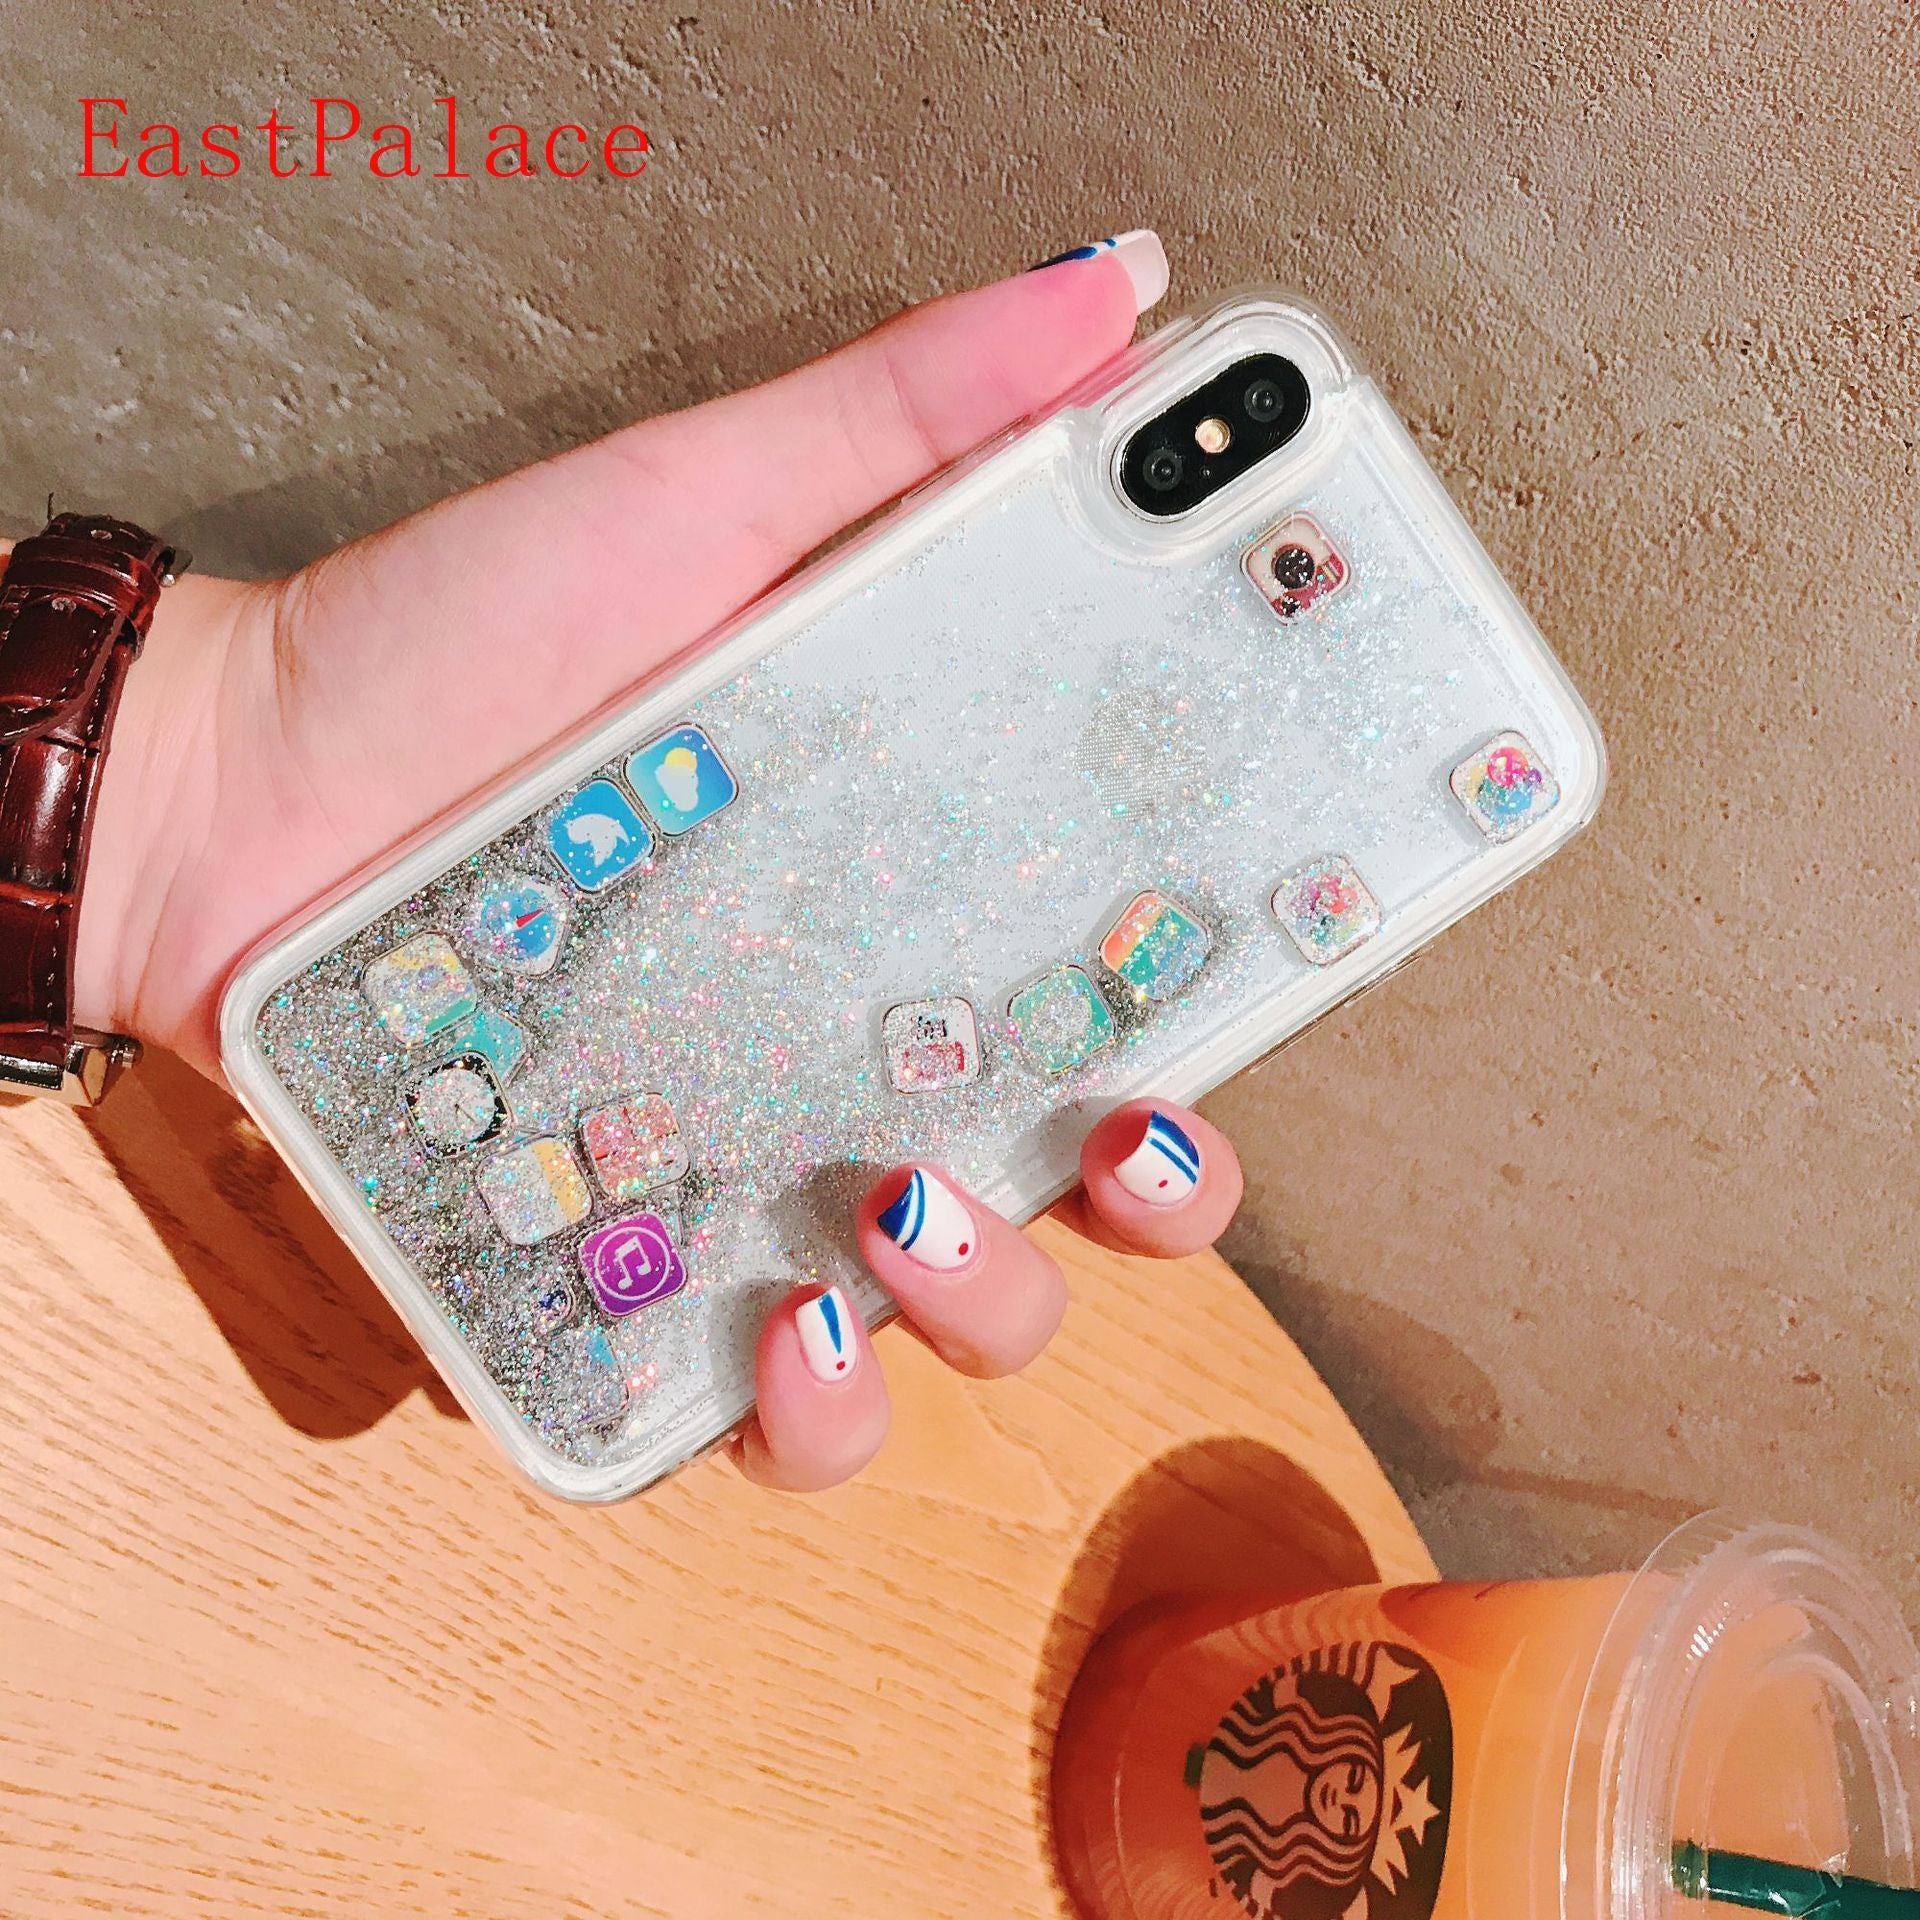 Cute Amusing Mobile Apps Music Icon Pattern Phone Case Cover For Iphone X XS 6 6s Plus 10 7 8 Plus Glitter Liquid Quicksand Case